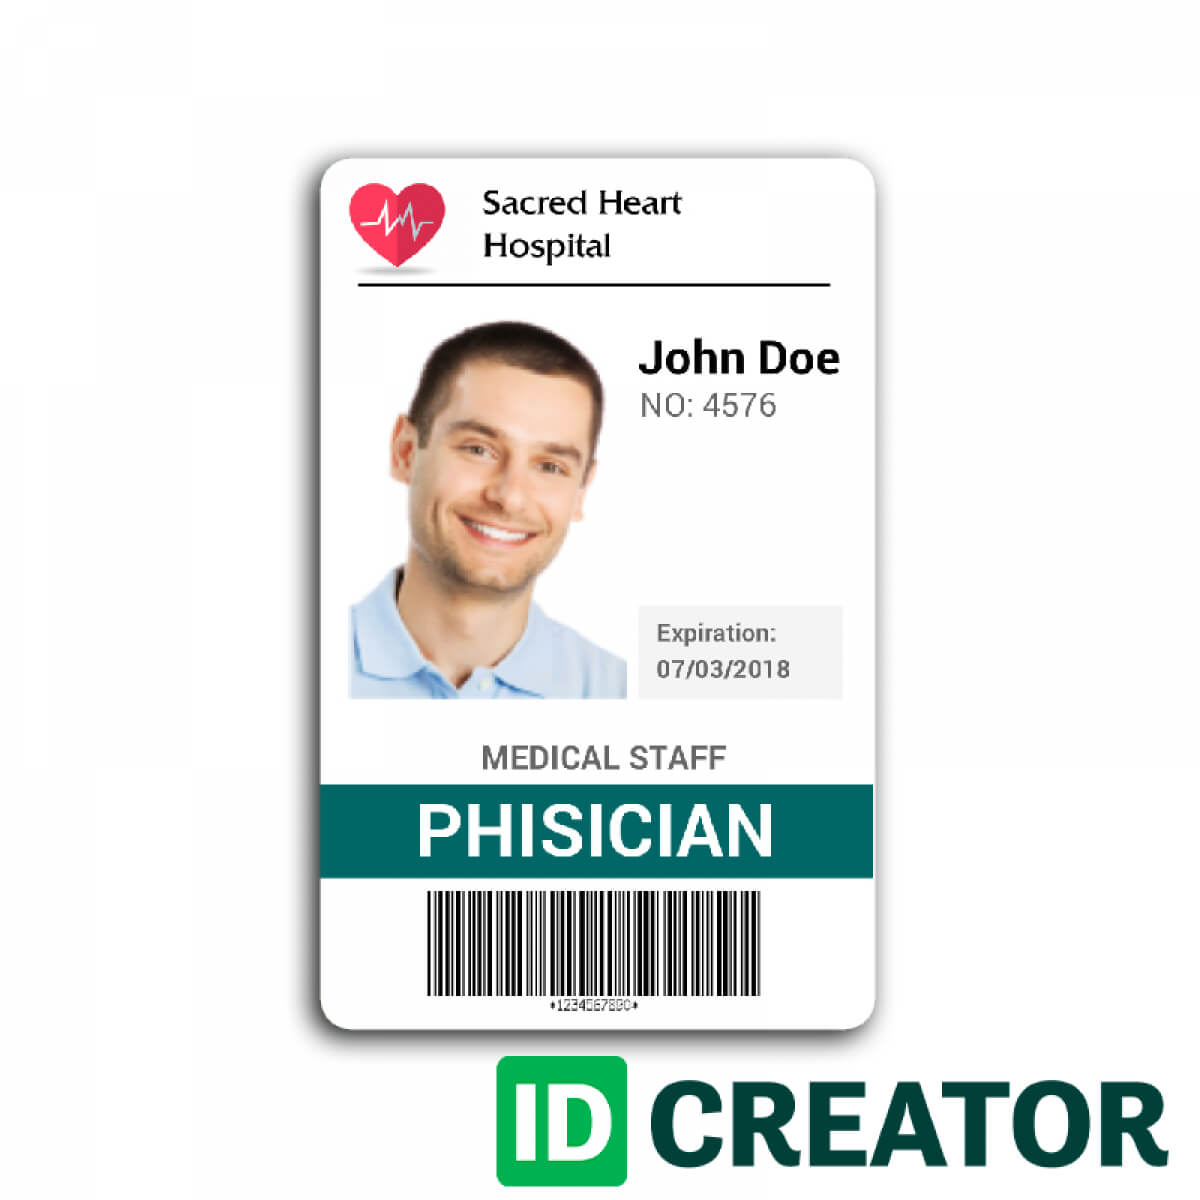 Doctor Id Card #2 | Wit Research | Id Card Template Inside Hospital Id Card Template